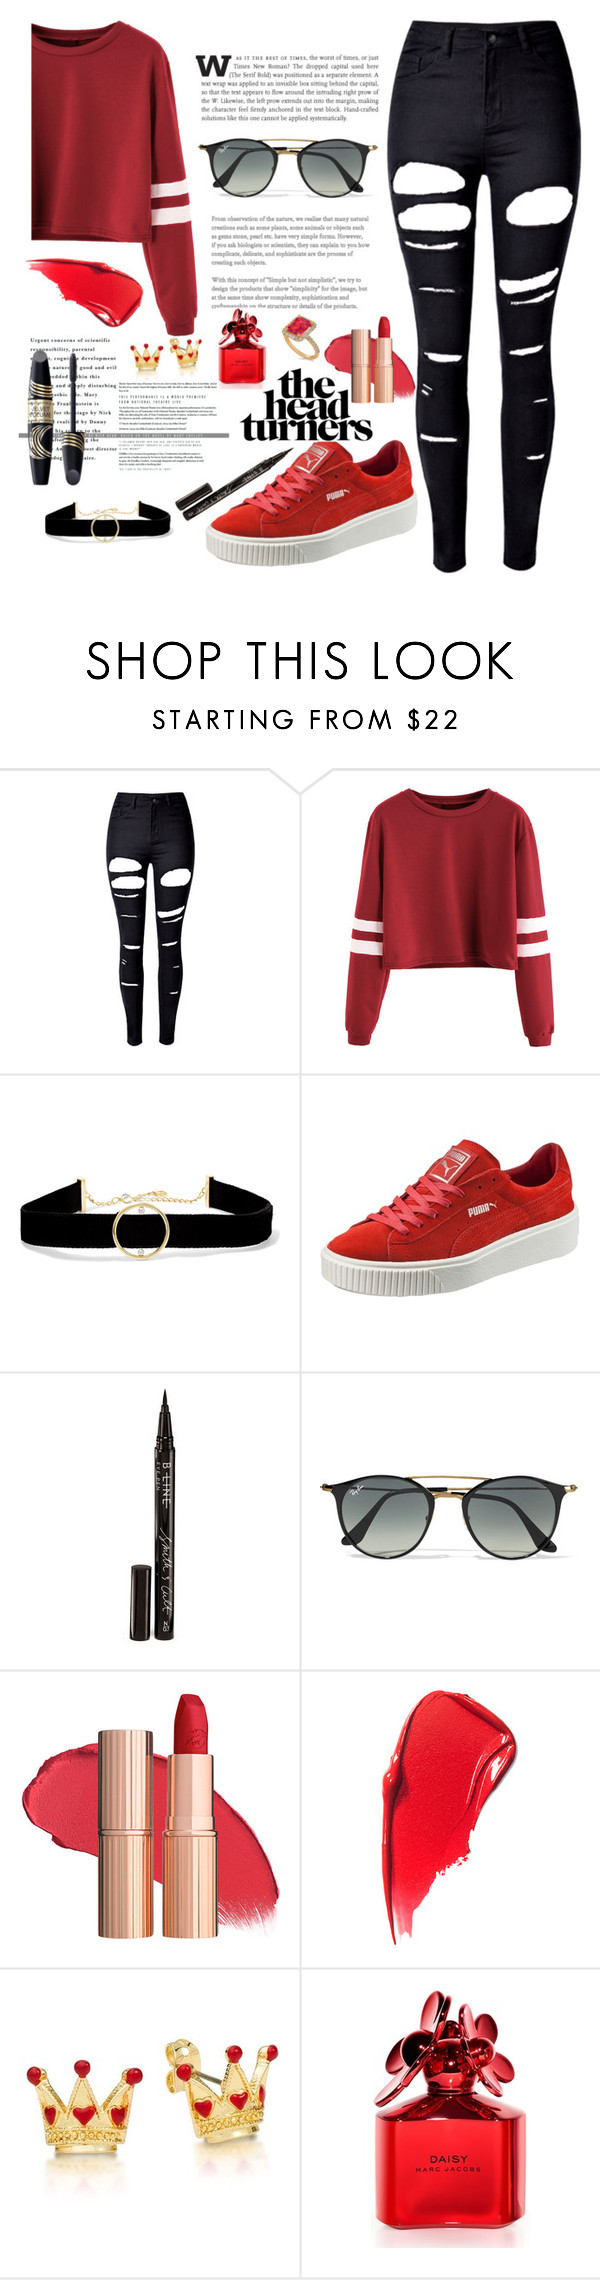 """Varsity"" by justinbieber-zaikara on Polyvore featuring WithChic, Anissa Kermiche, Puma, Smith & Cult, Ray-Ban, Marc Jacobs, Allurez and Max Factor"